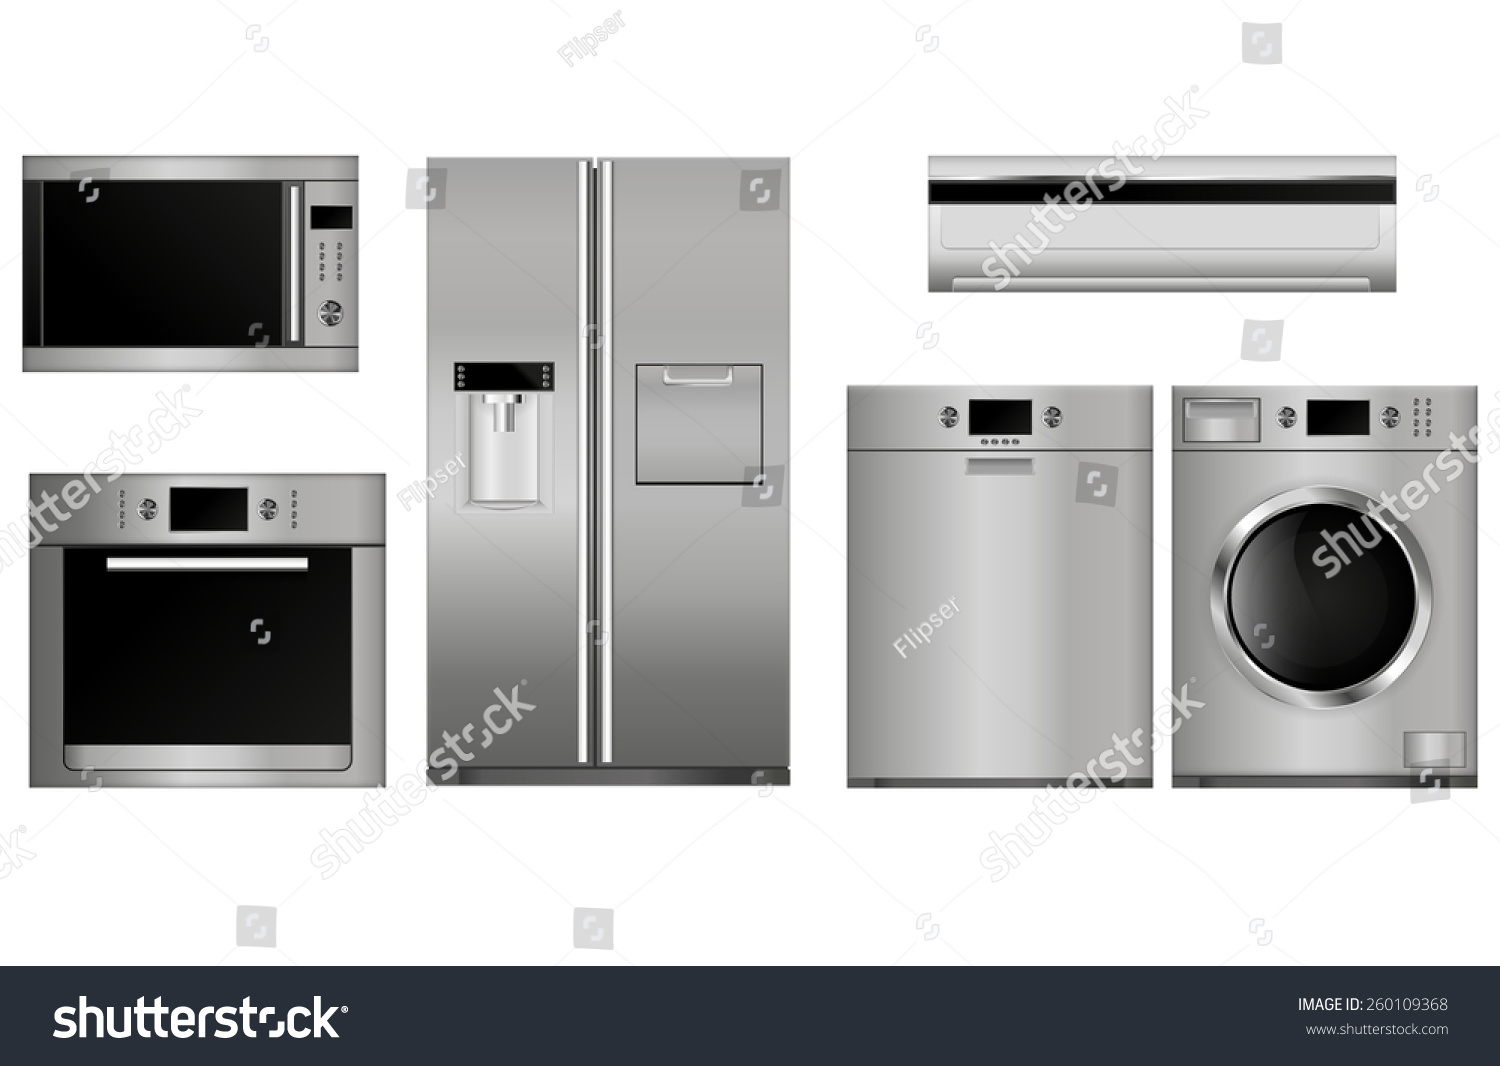 Uncategorized Kitchen Appliance Set home appliances set household kitchen technics stock vector of microwave and electric oven dishwasher